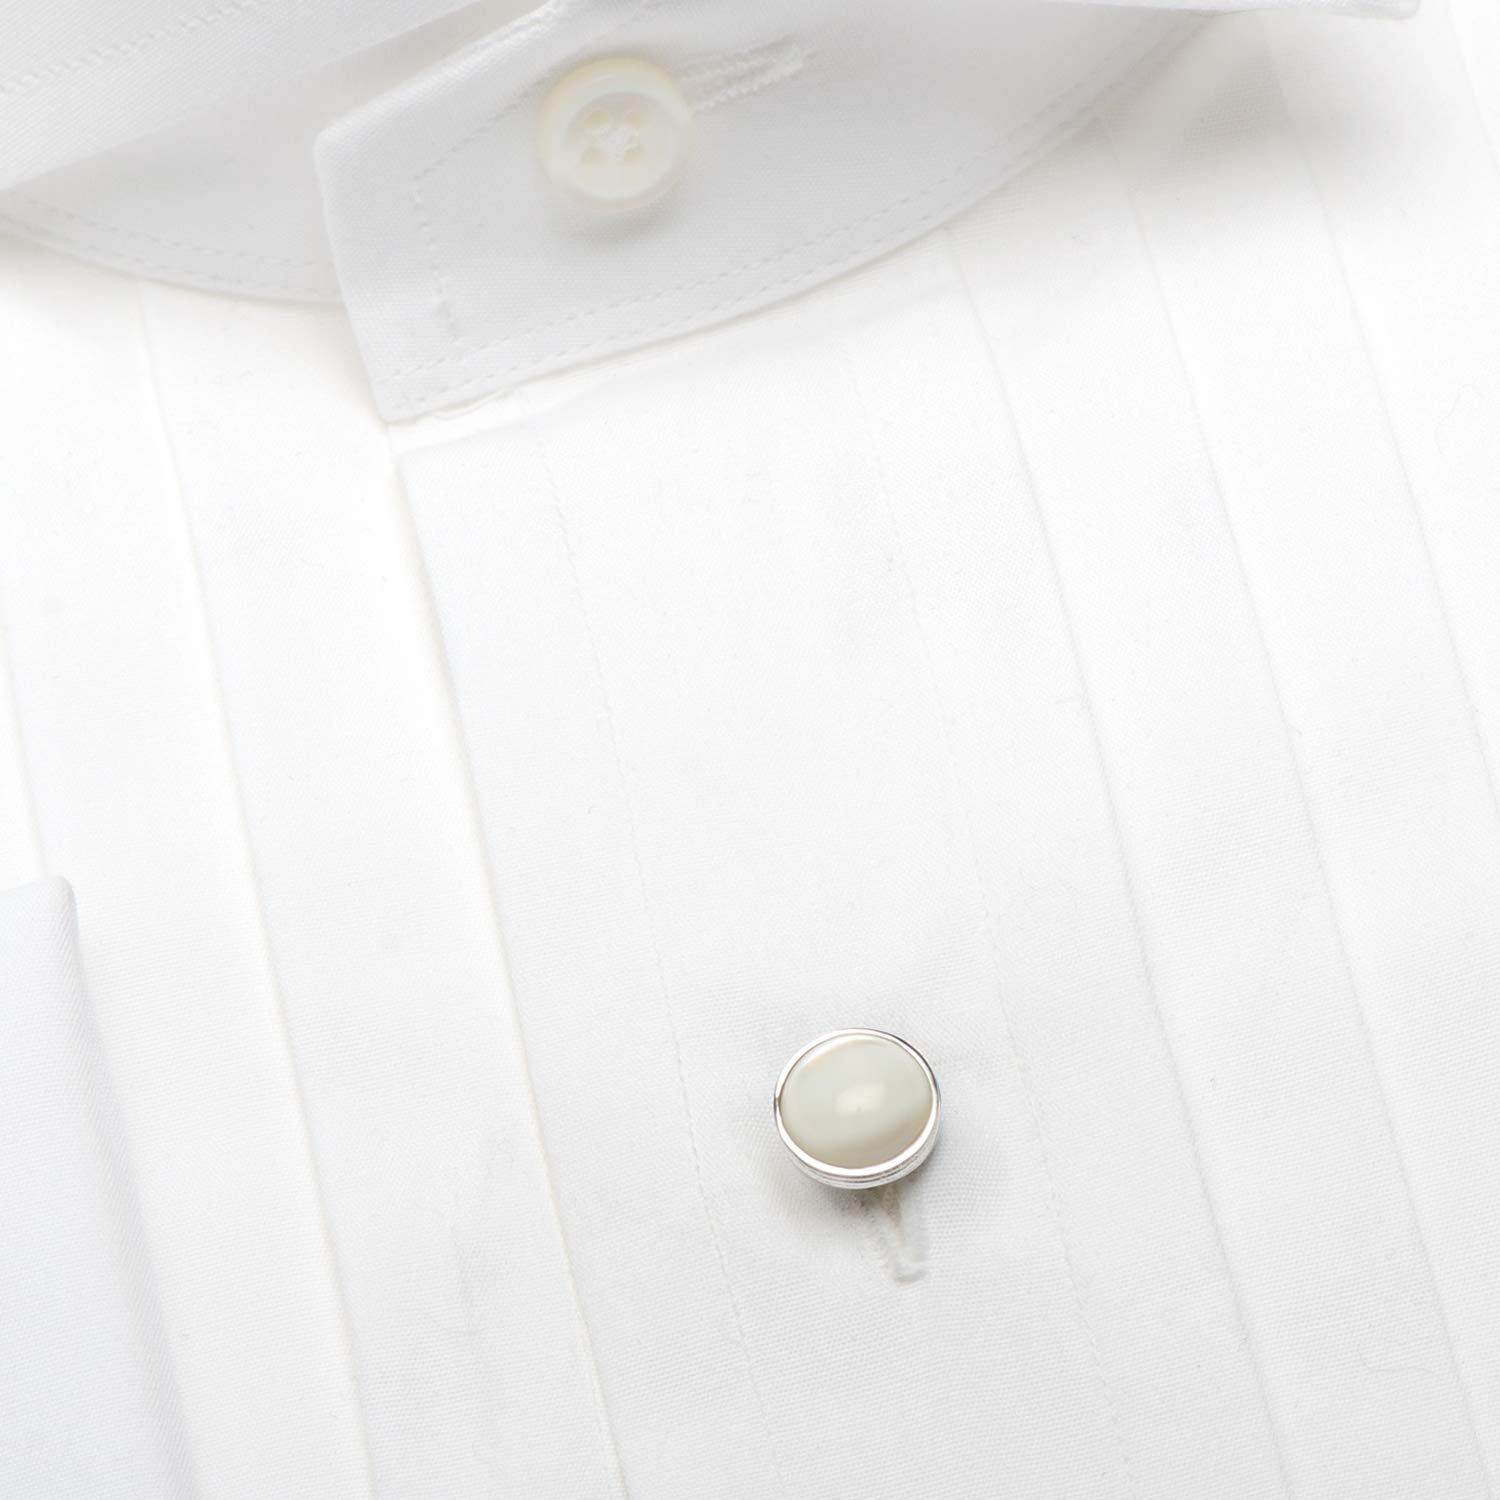 Ox and Bull Trading Co. Sterling Silver Ribbed Mother of Pearl Studs by Ox and Bull Trading Company (Image #3)